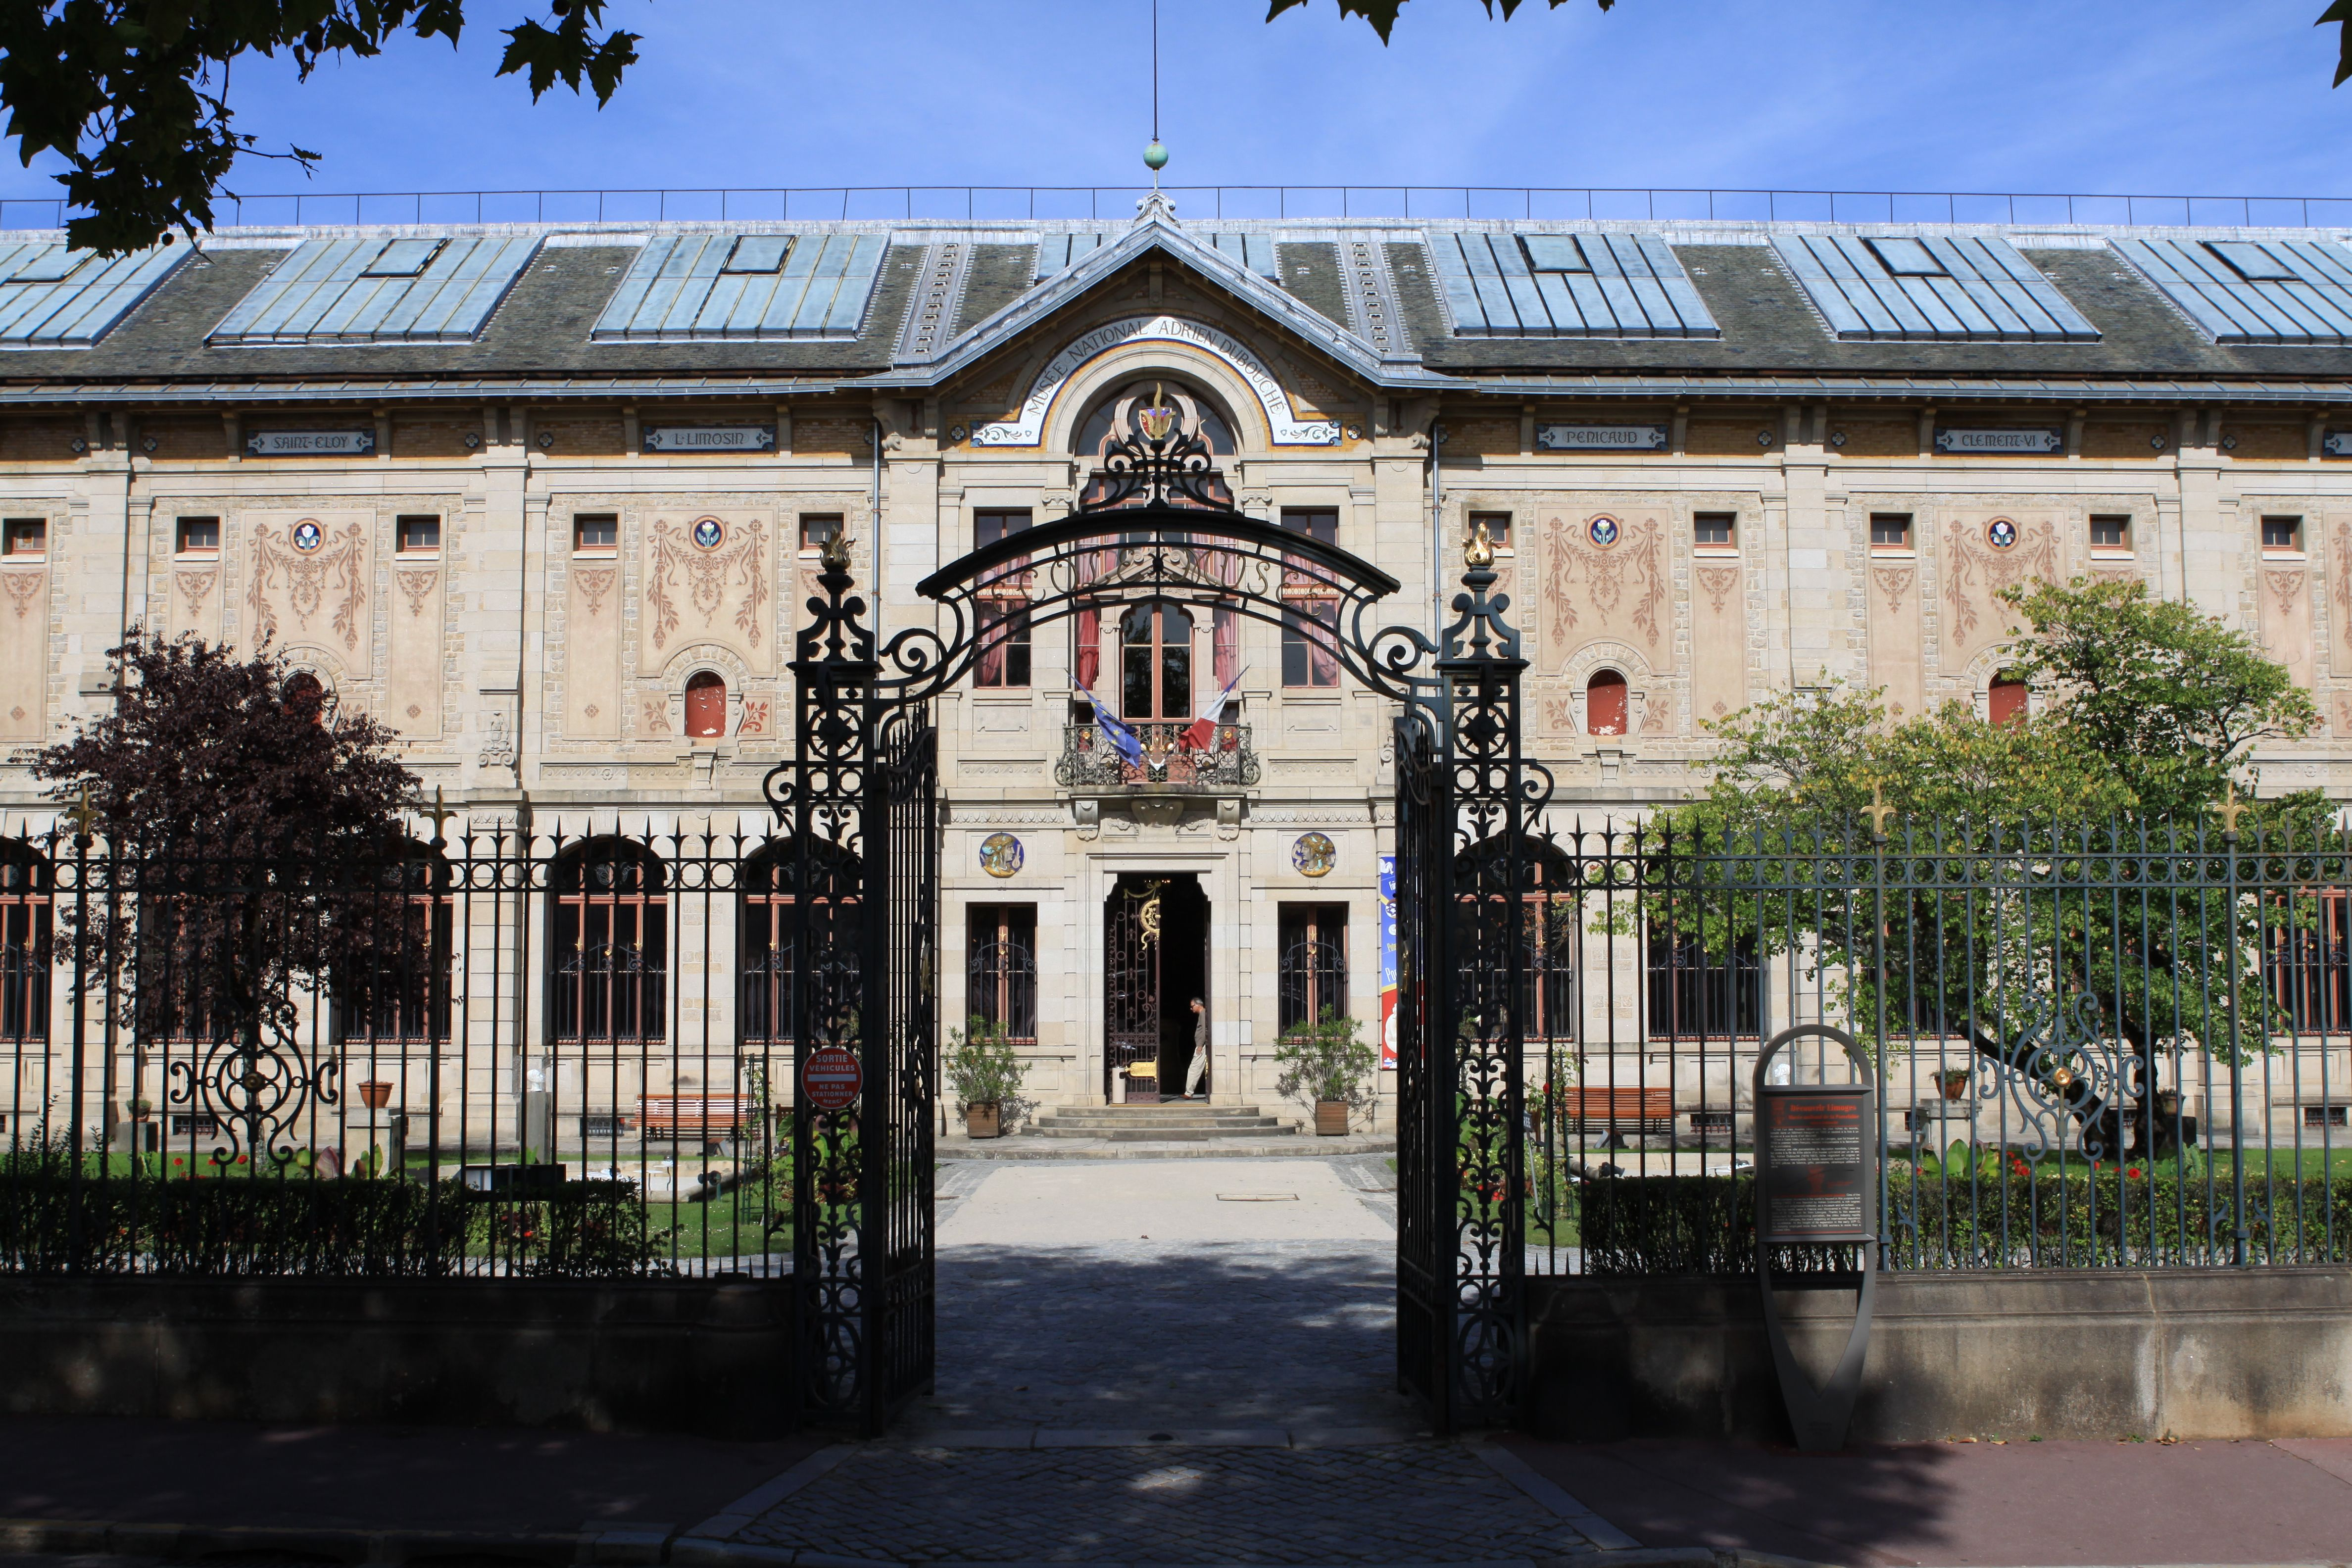 Musee national adrien dubouche - Limoge France